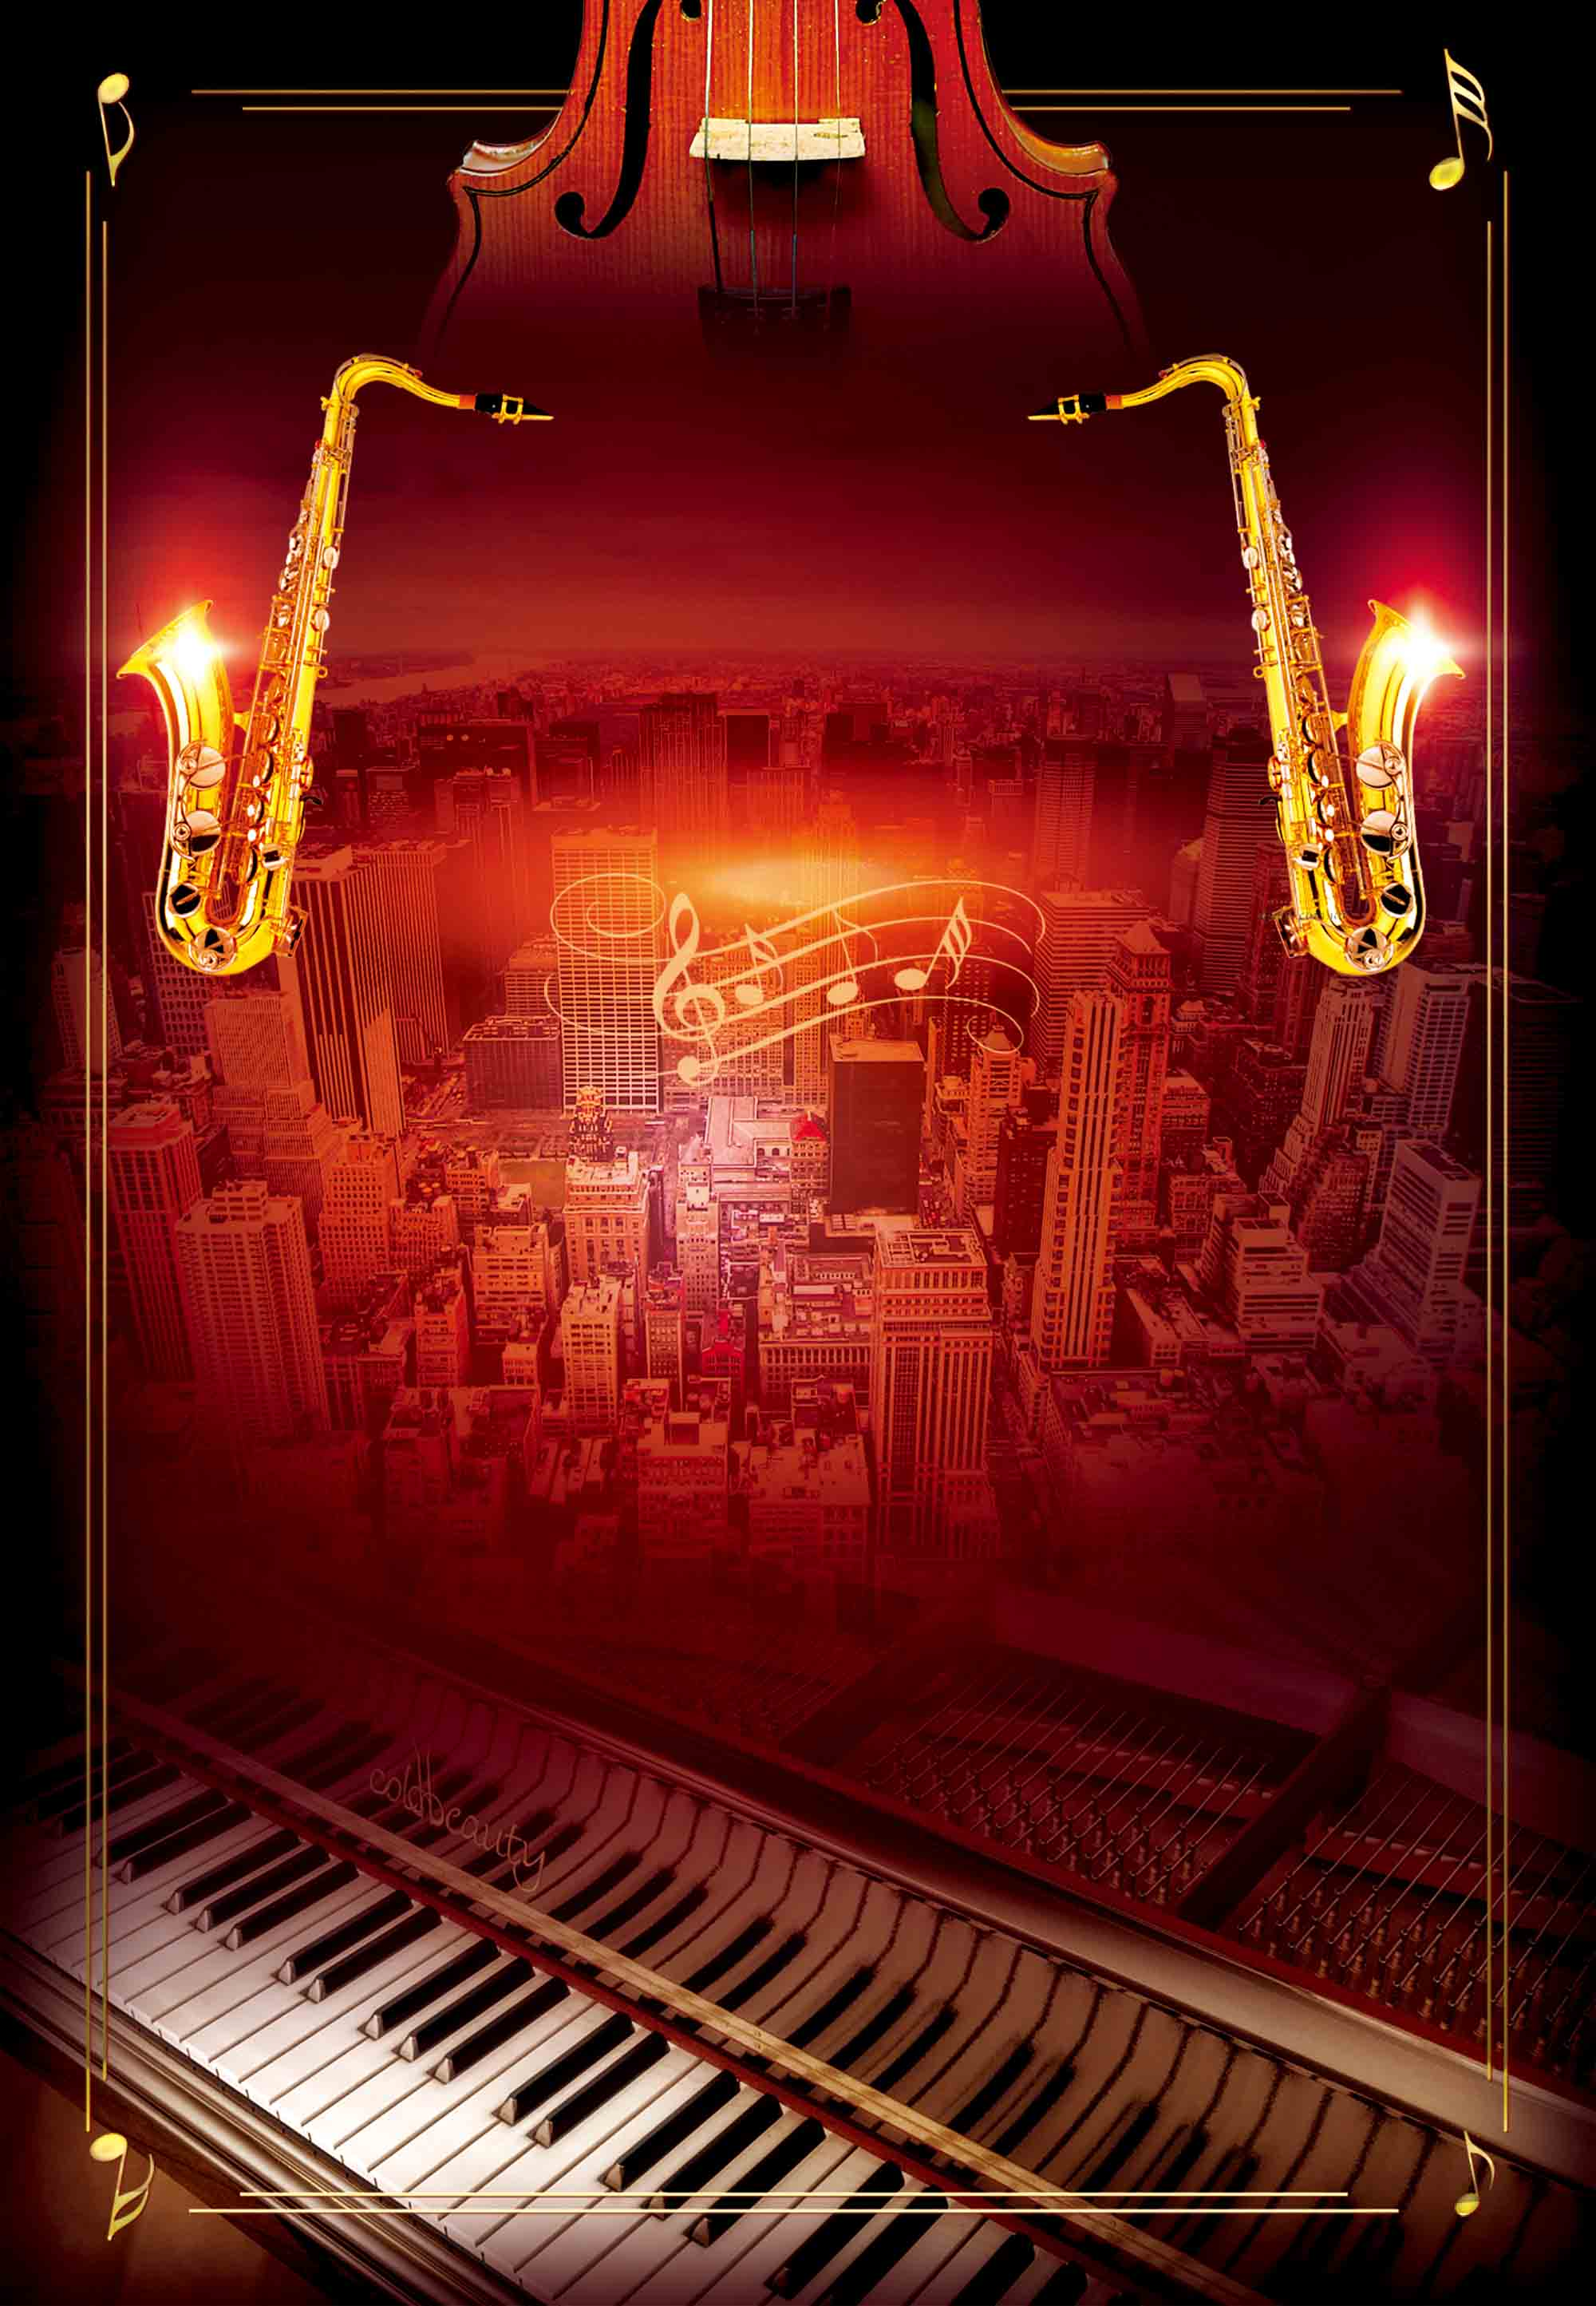 red atmosphere jazz concert background  piano  saxophone